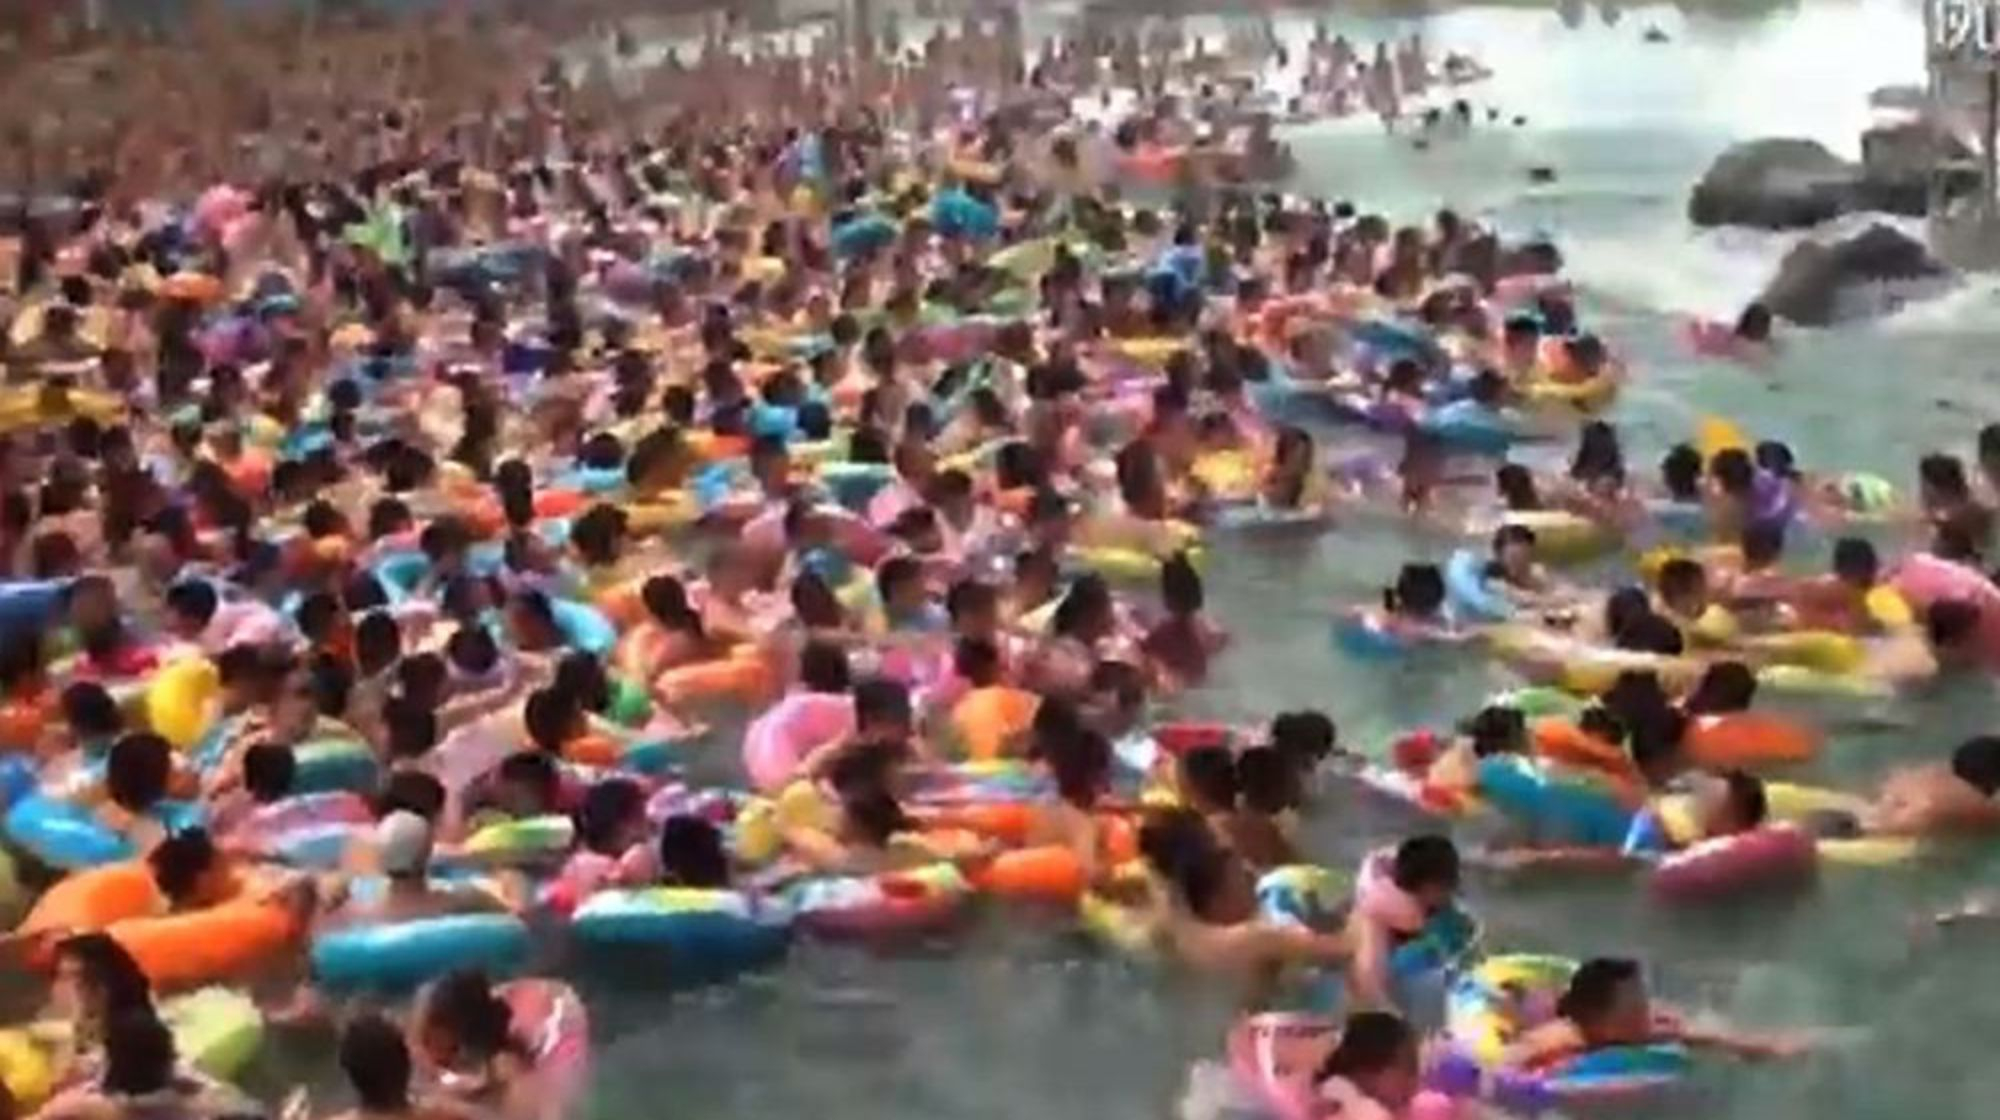 Piscine En Chine, Saut De Superman Et Steak Cuit Par Terre: Le Zapping  Insolite De La Rédac' à Piscine Chine